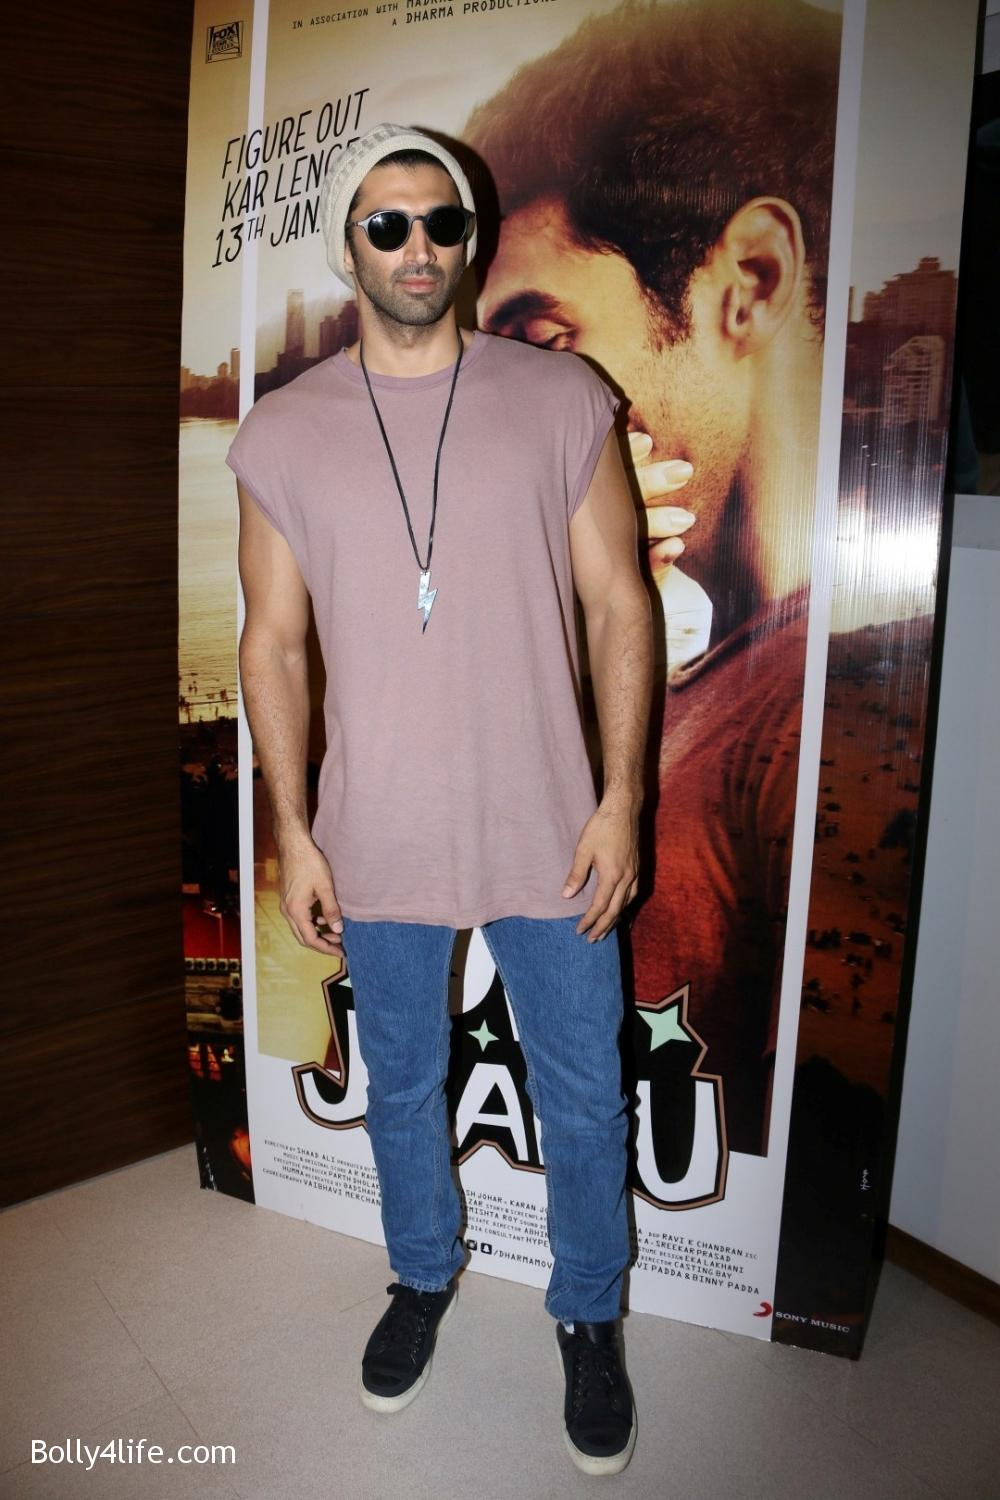 Aditya-Roy-Kapur-and-Shraddha-Kapoor-during-the-media-interaction-for-the-film-Ok-Jaanu-9.jpg